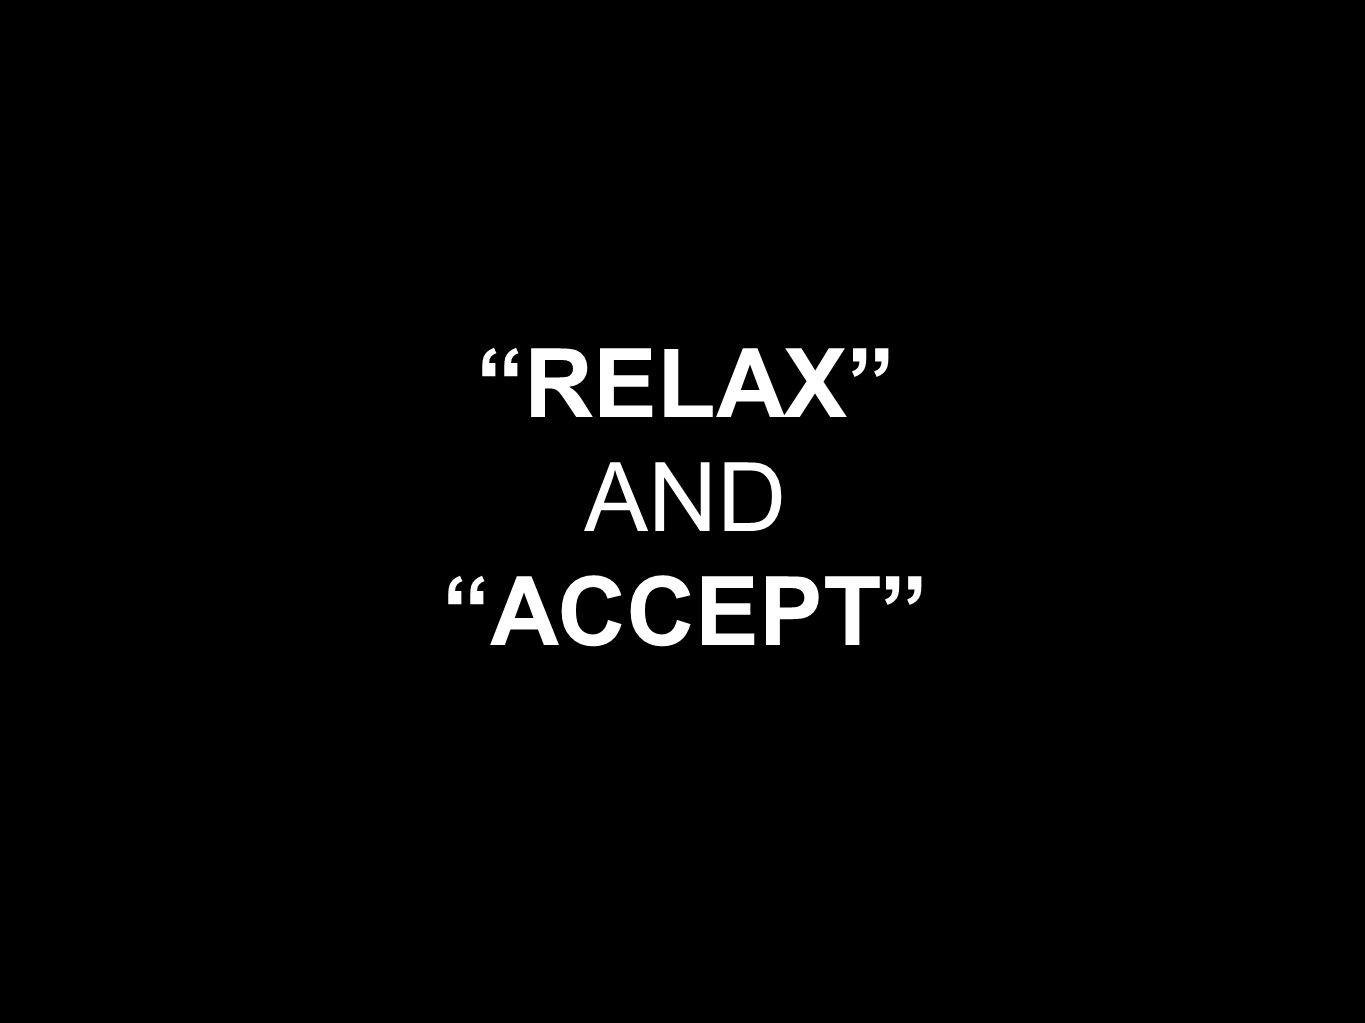 RELAX AND ACCEPT